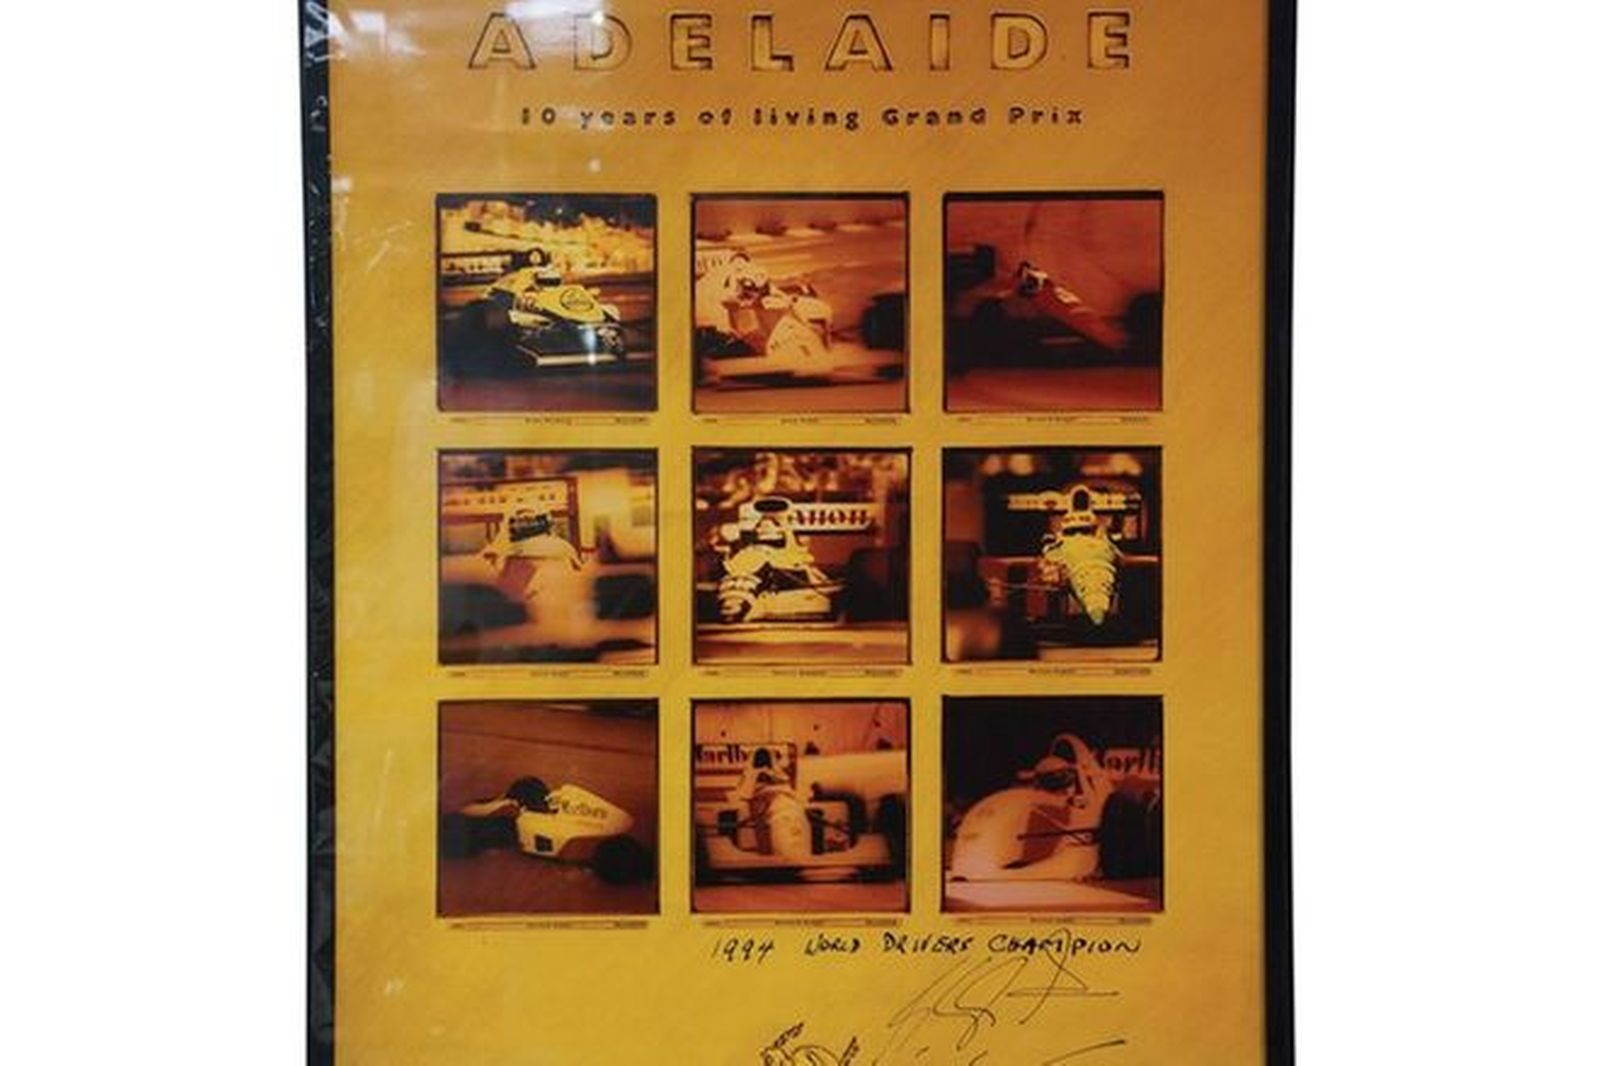 Signed Print - 1994 Adelaide Grand Prix - signed by Michael Schumacher